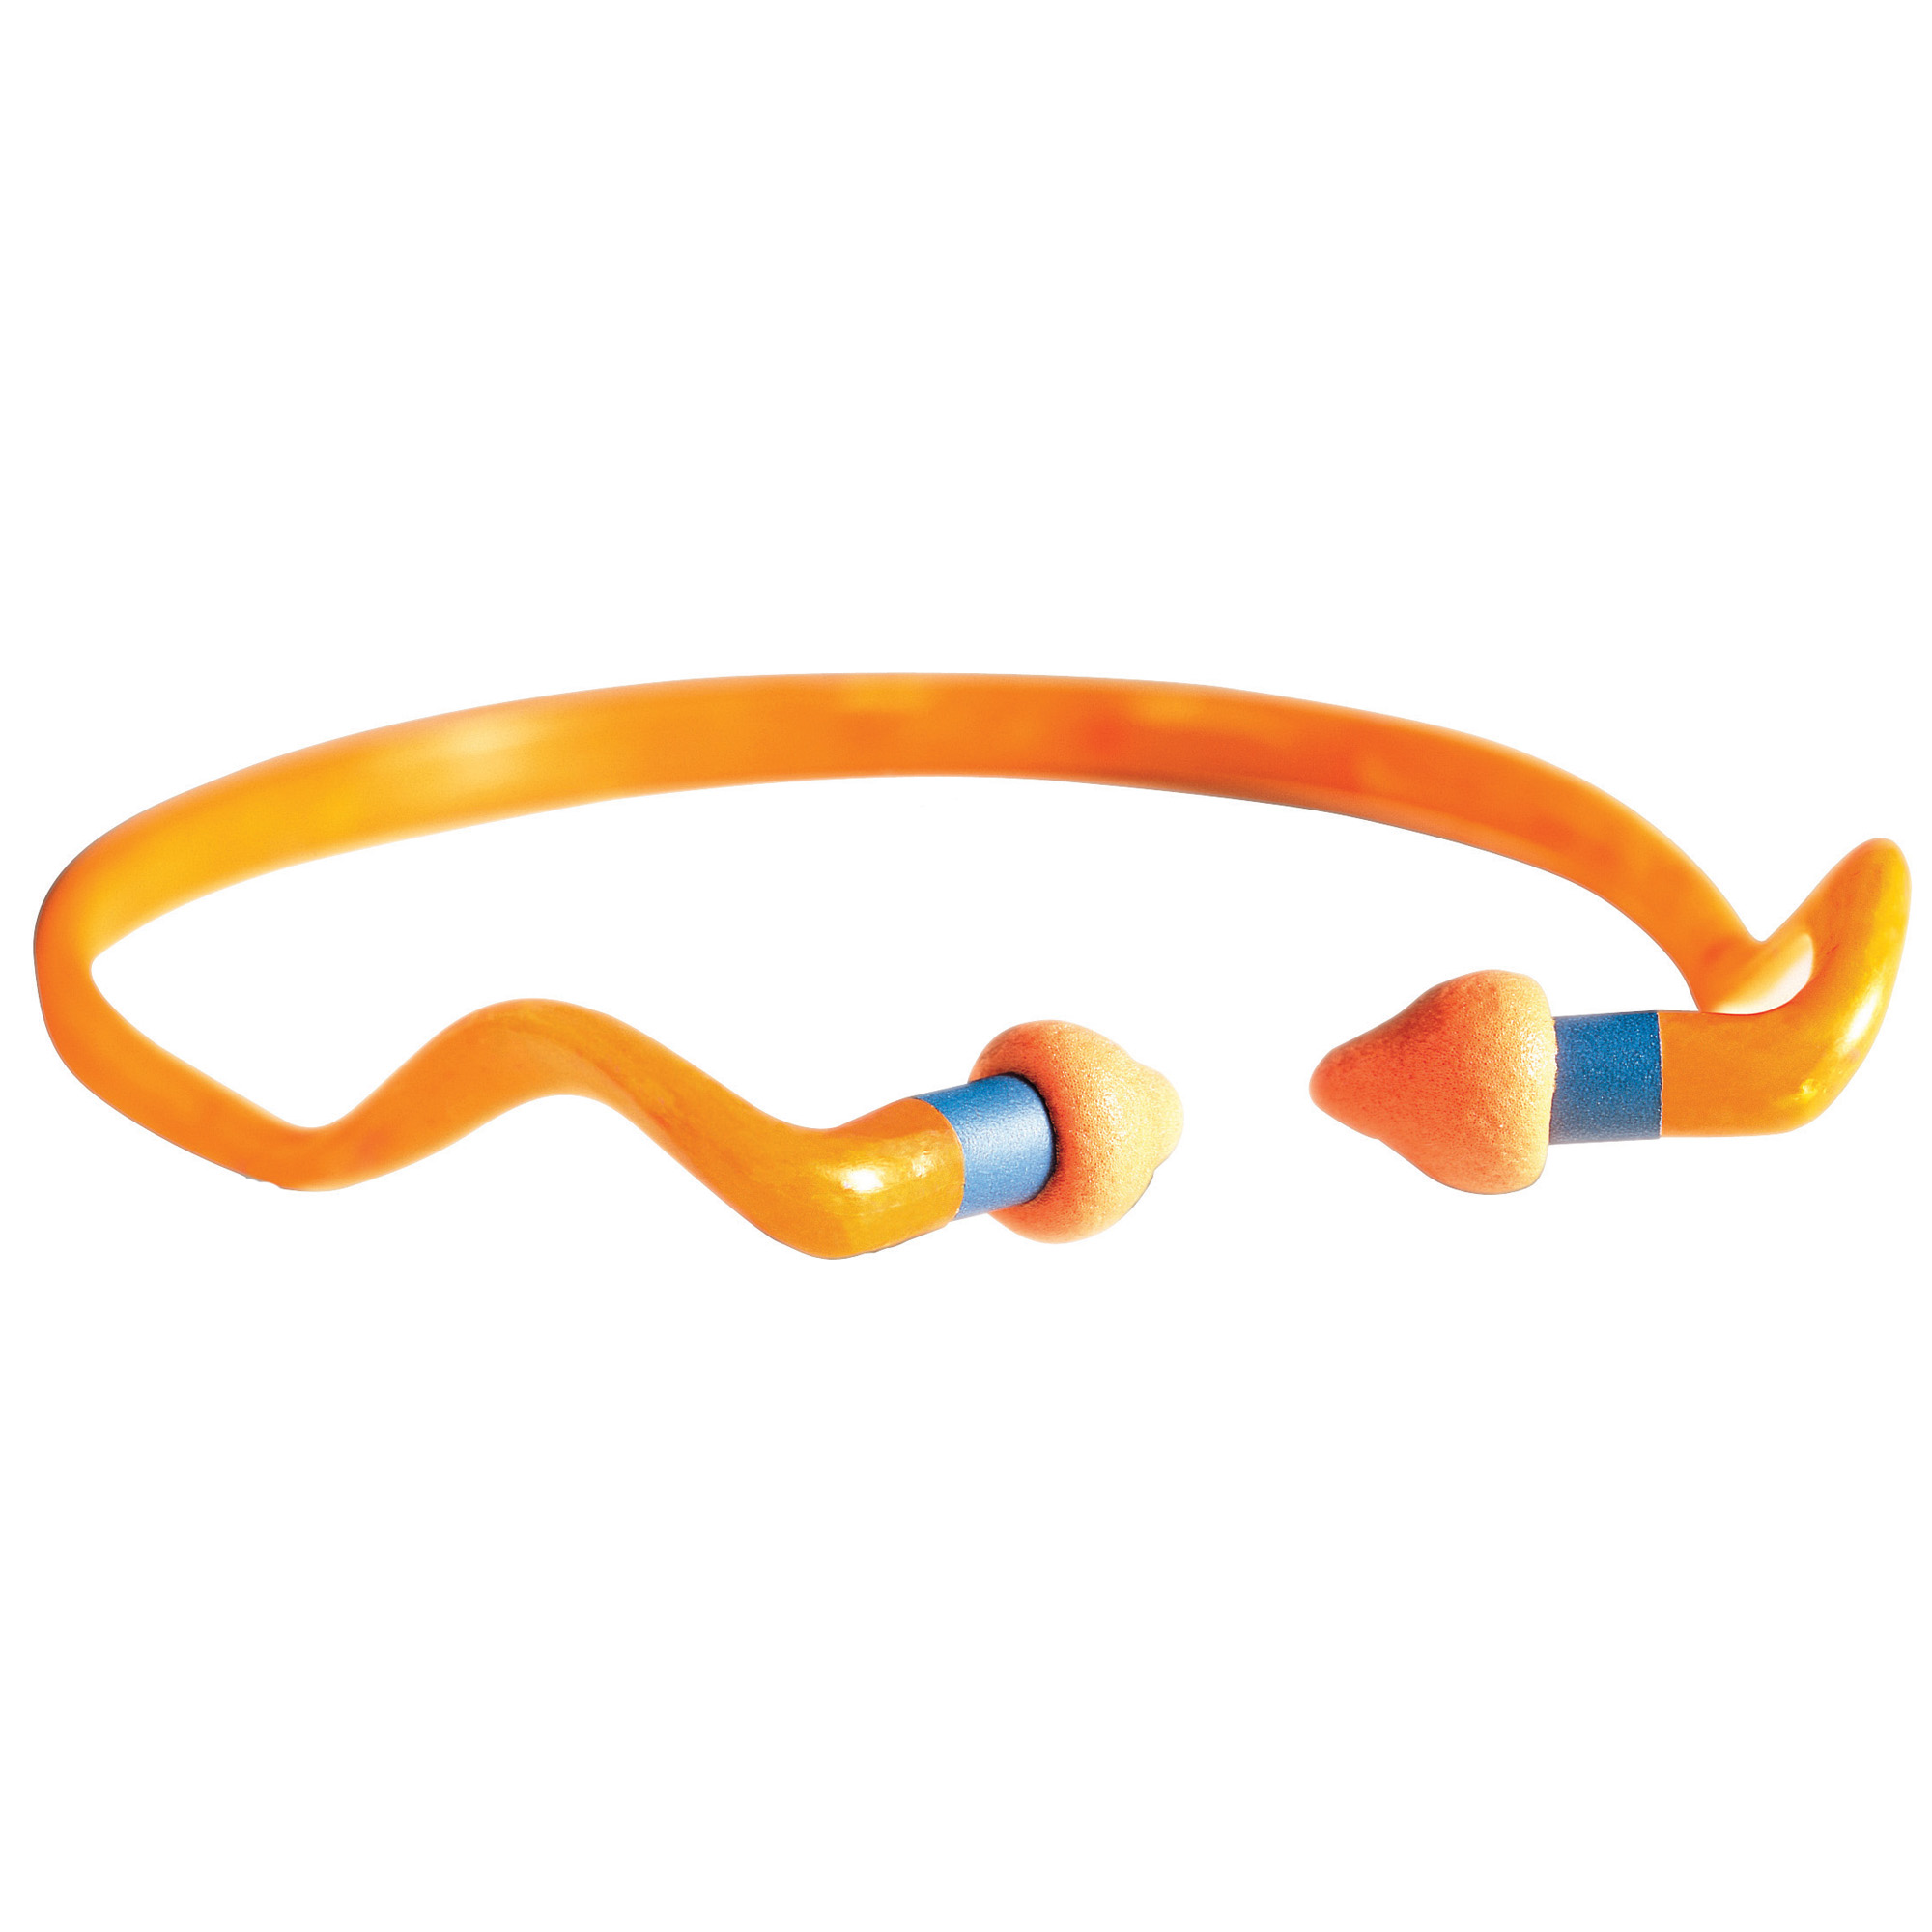 """This specially-designed headband rests comfortably around neck when away from shooting noise to keep the earplugs away from dirt. Soft"""" ergonomic foam pods rest partially in ear for a balance of comfort and protection. Quick insertion design for easy on/off on the range or in the field."""